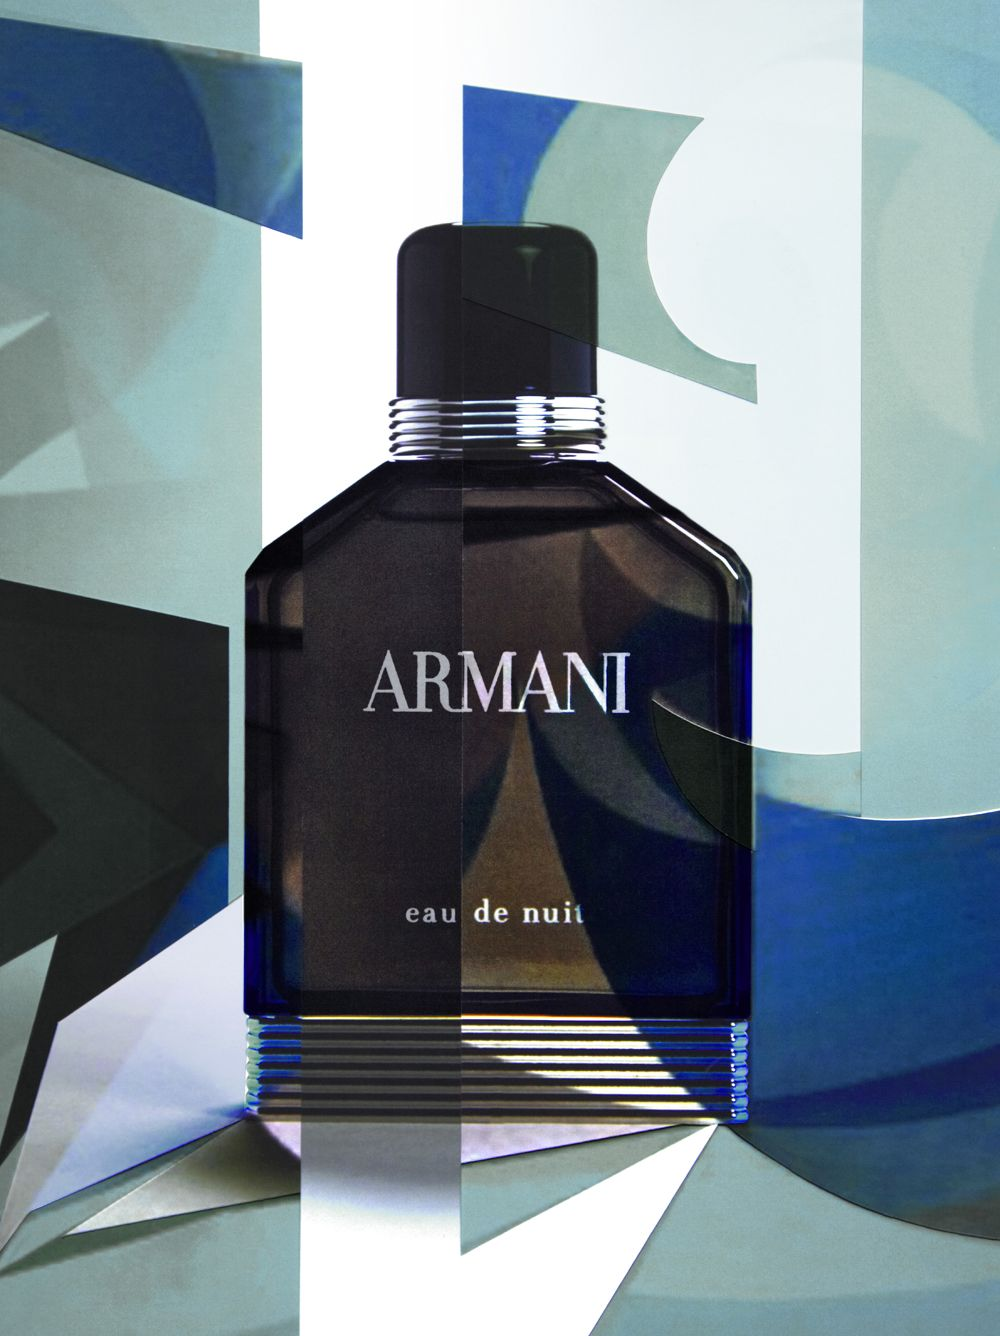 #GiorgioArmani Eau de Nuit for Men